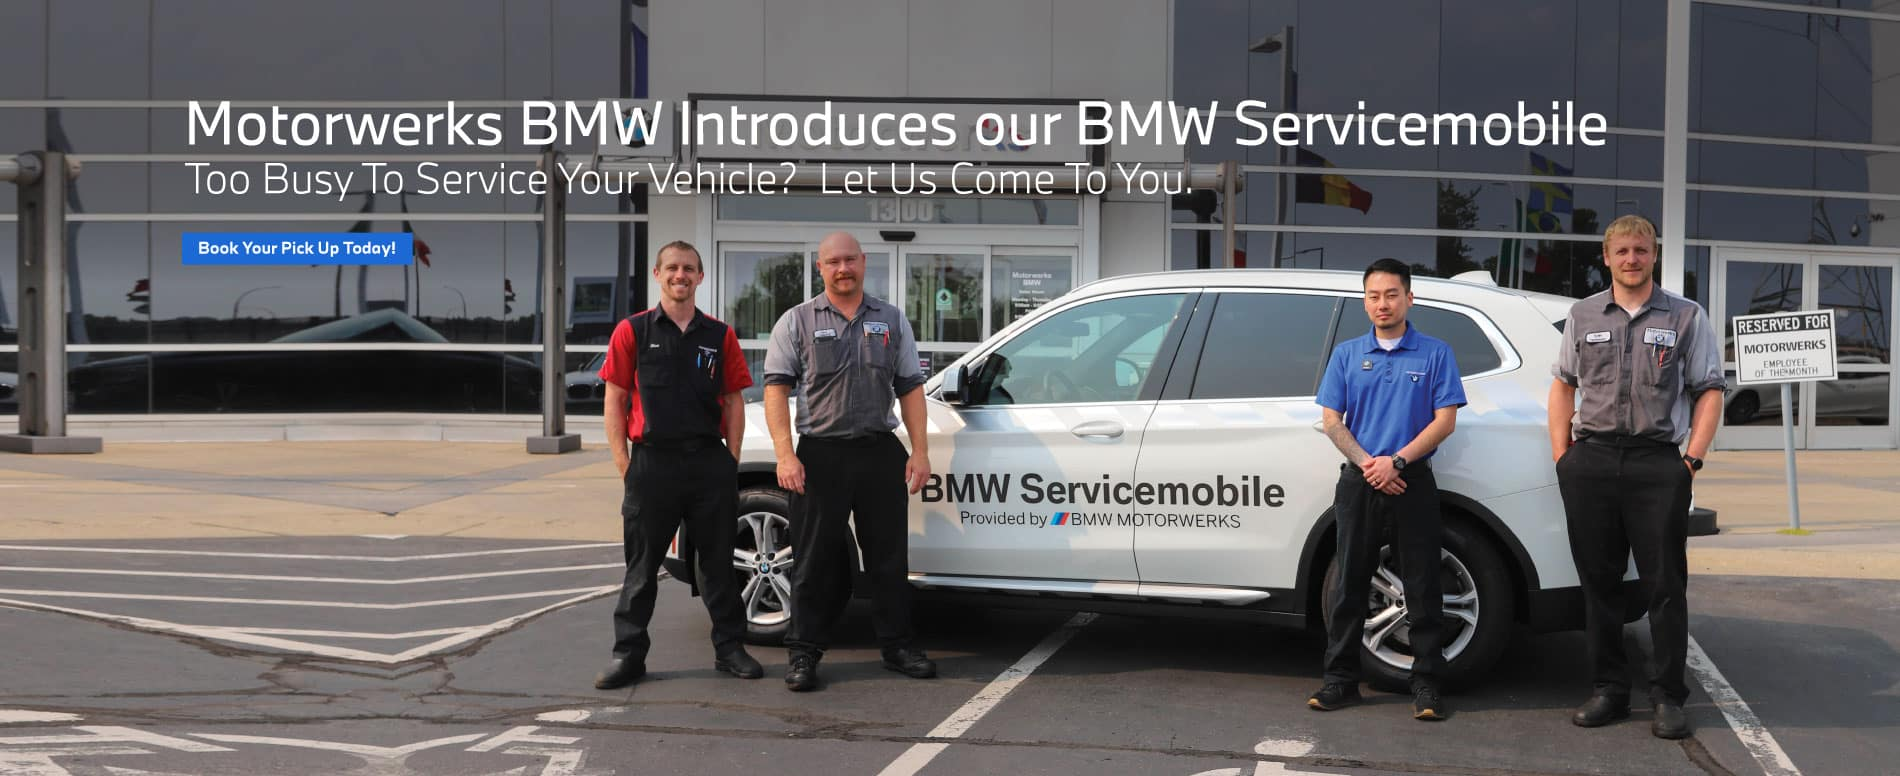 Too Busy To Service Your Vehicle? Let Us Come To You.